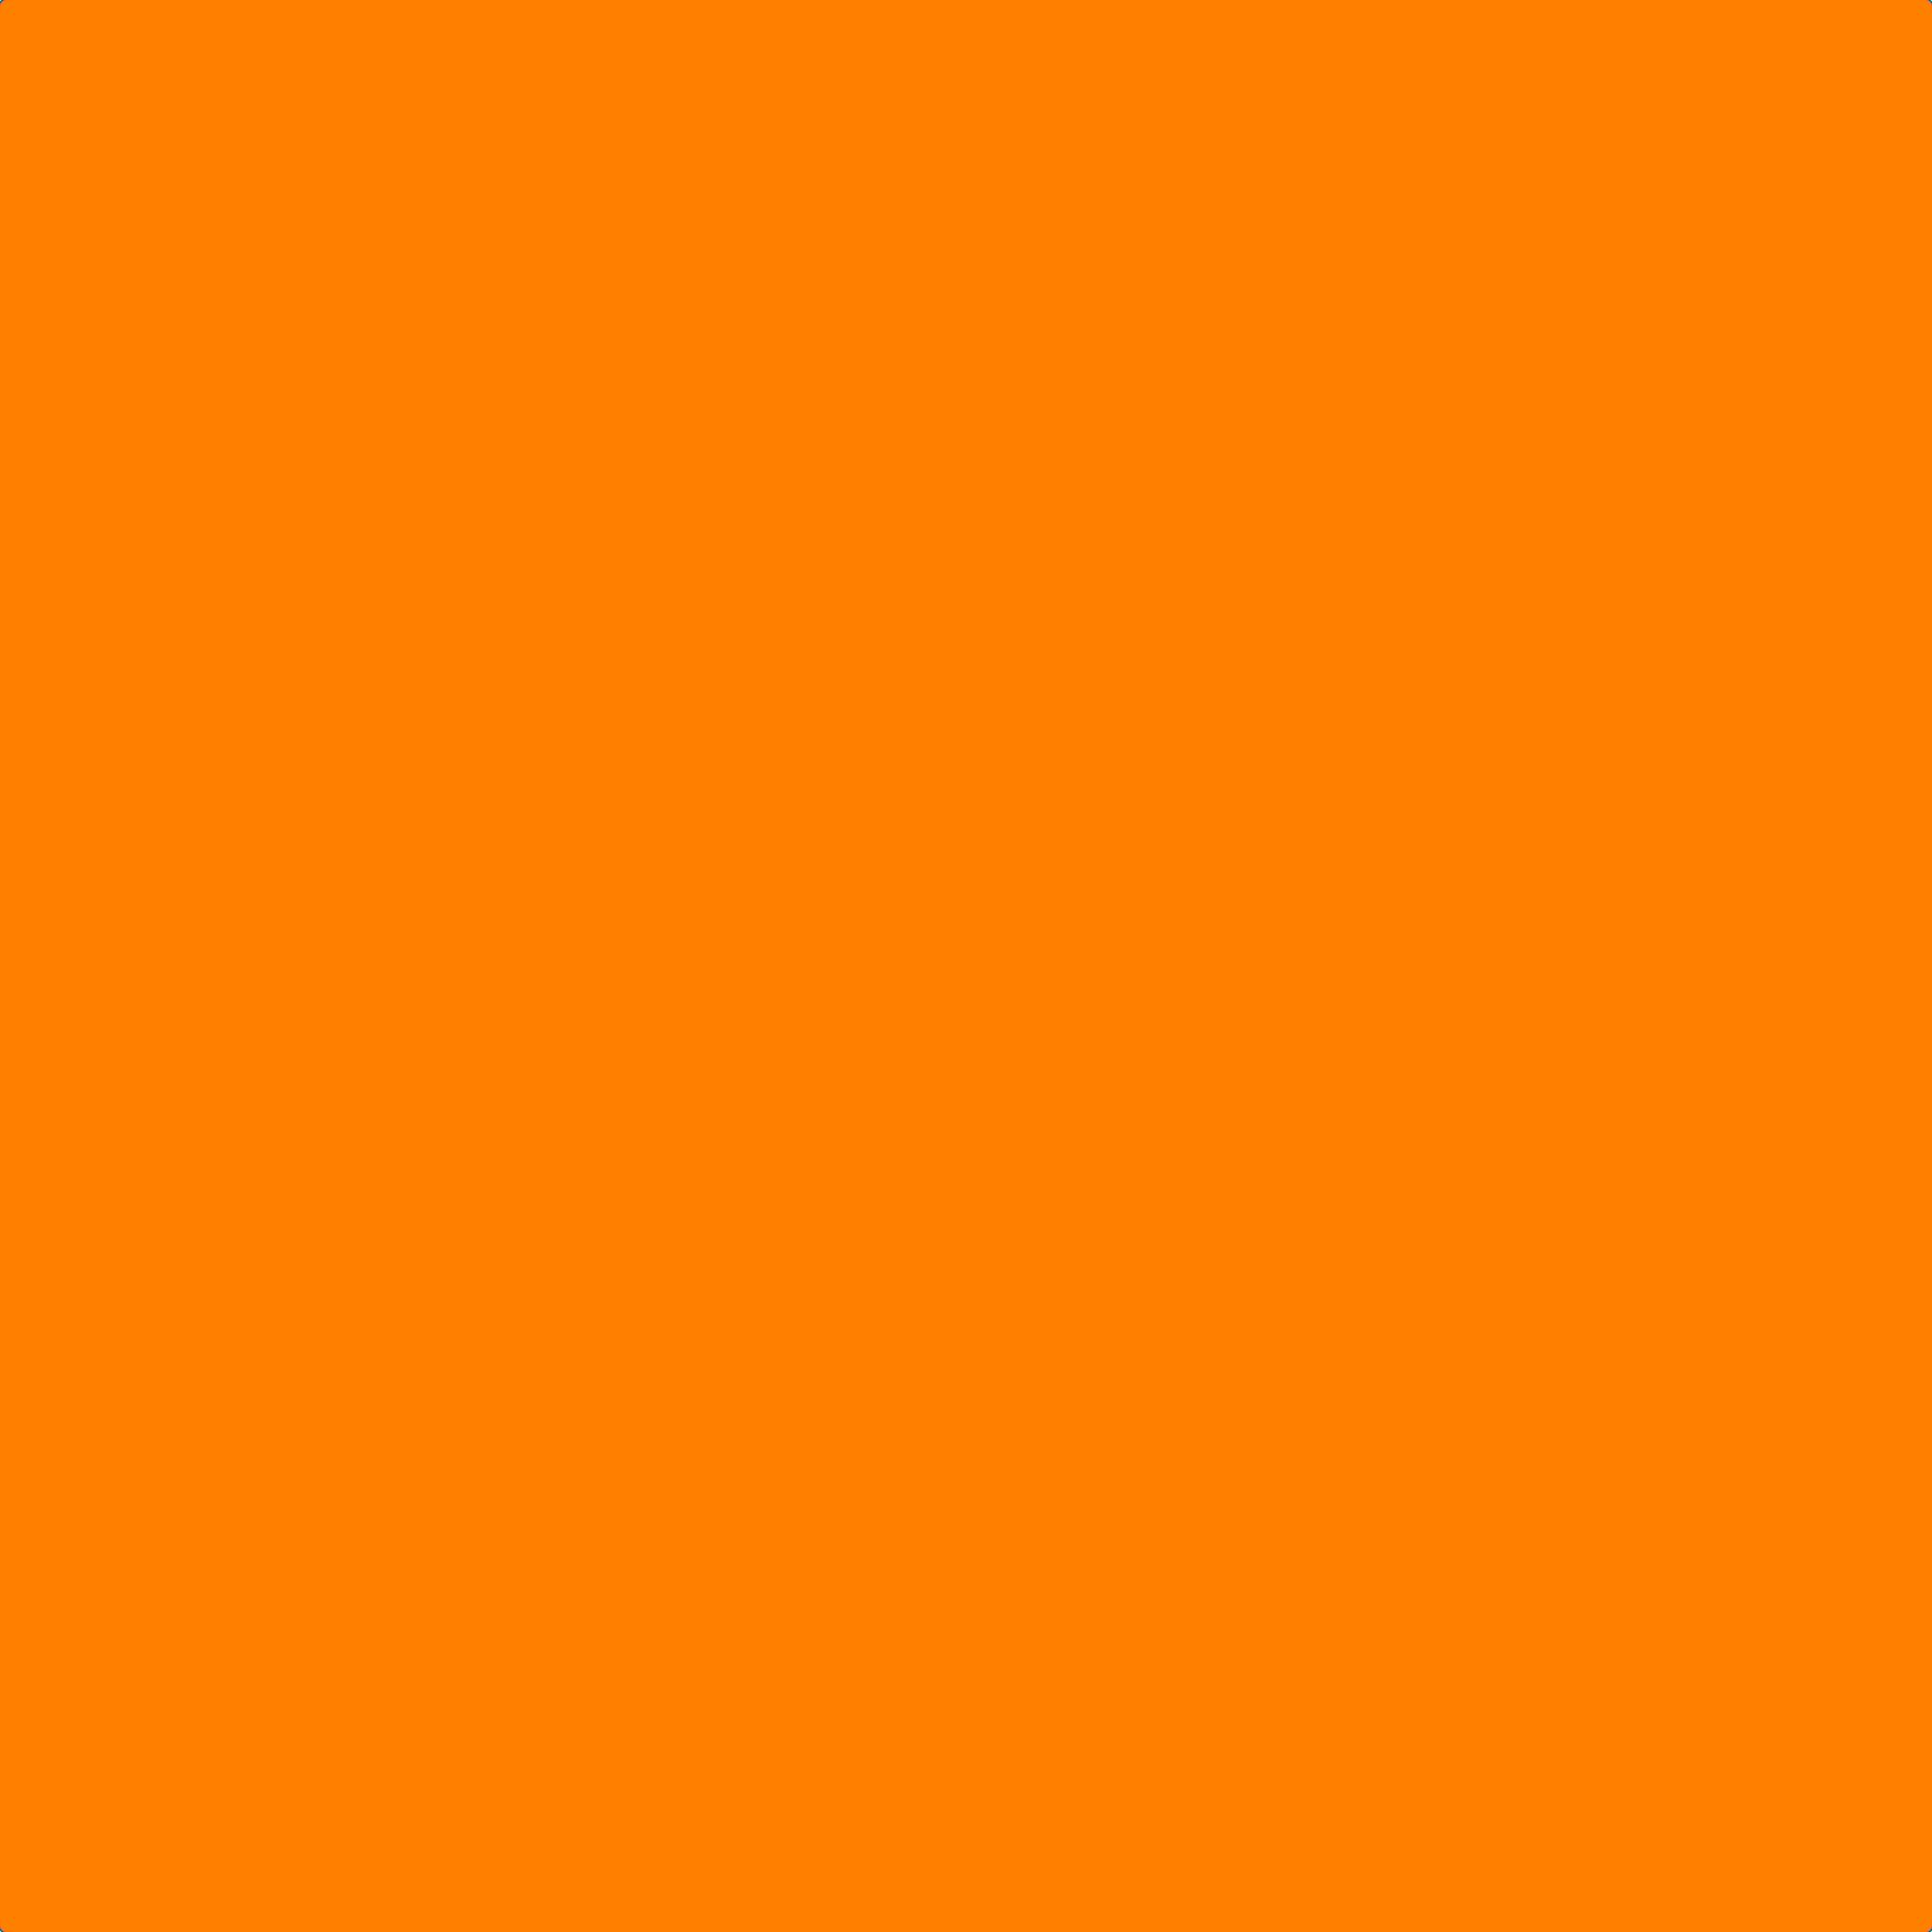 Orange Plain Wallpaper